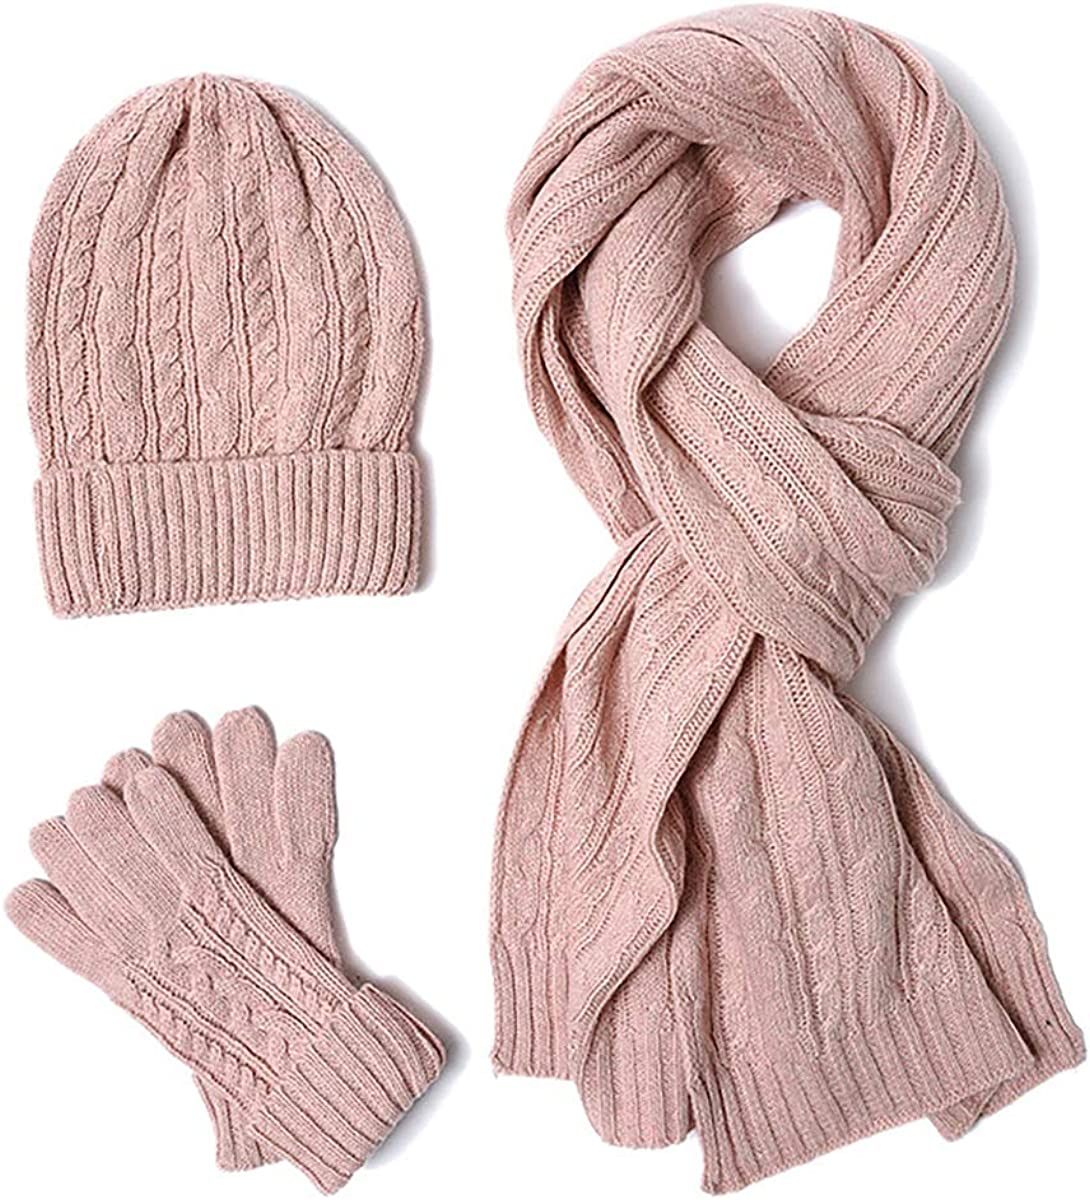 jweemax Hat Scarf Glove Sets, Stripe Ribbed Warm Thick Fashion Hat Mittens Winter Knitted Set for New Year's Gift